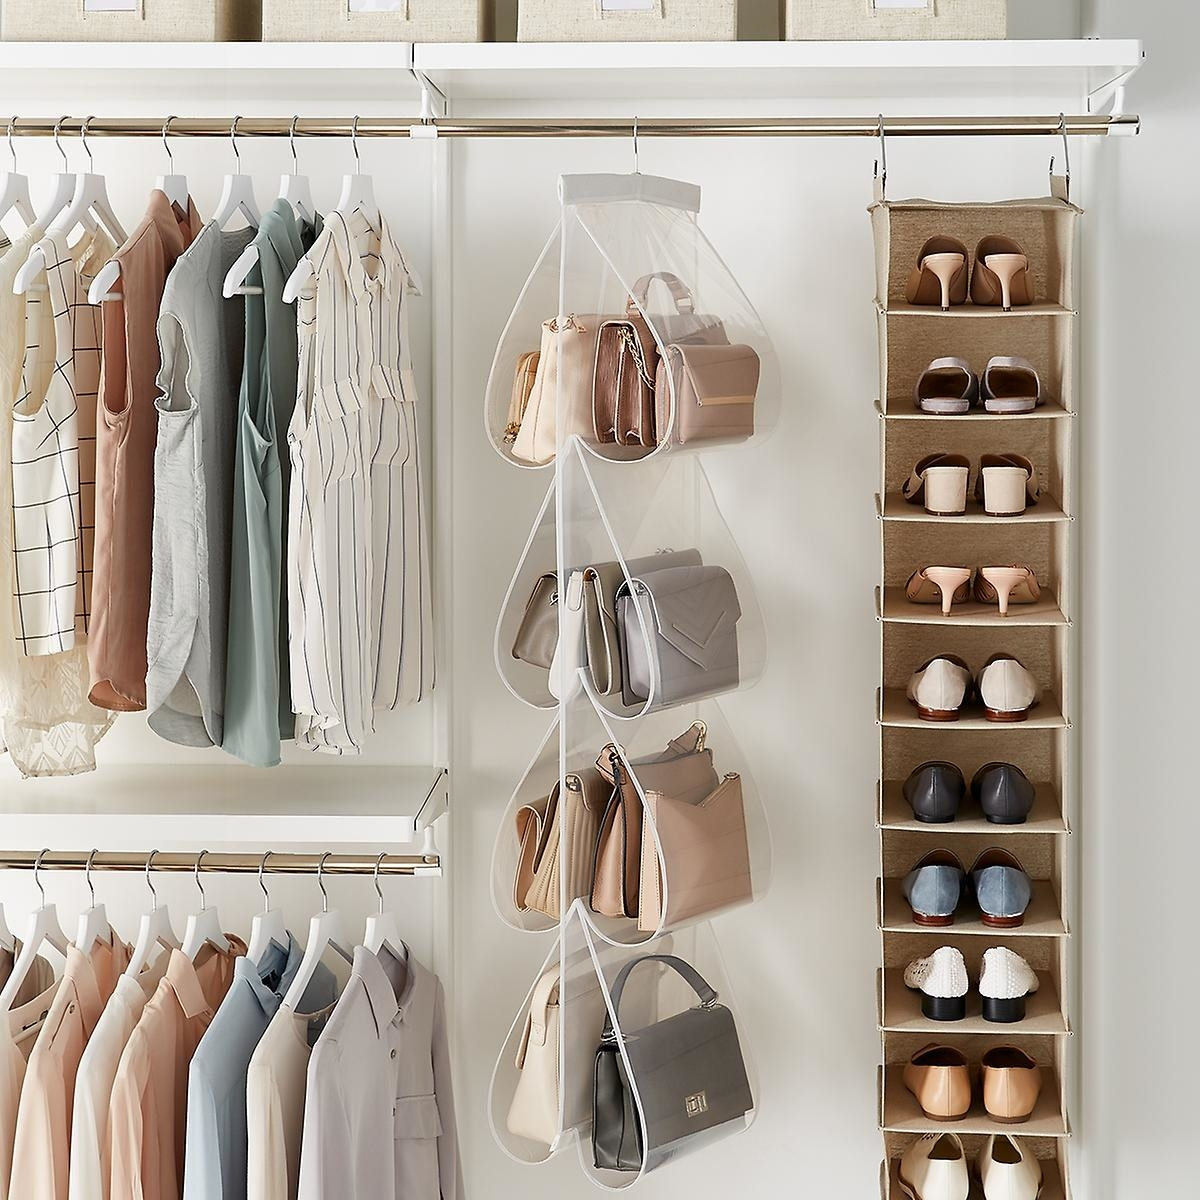 Multiple handbags hanging in the purse file inside a closet